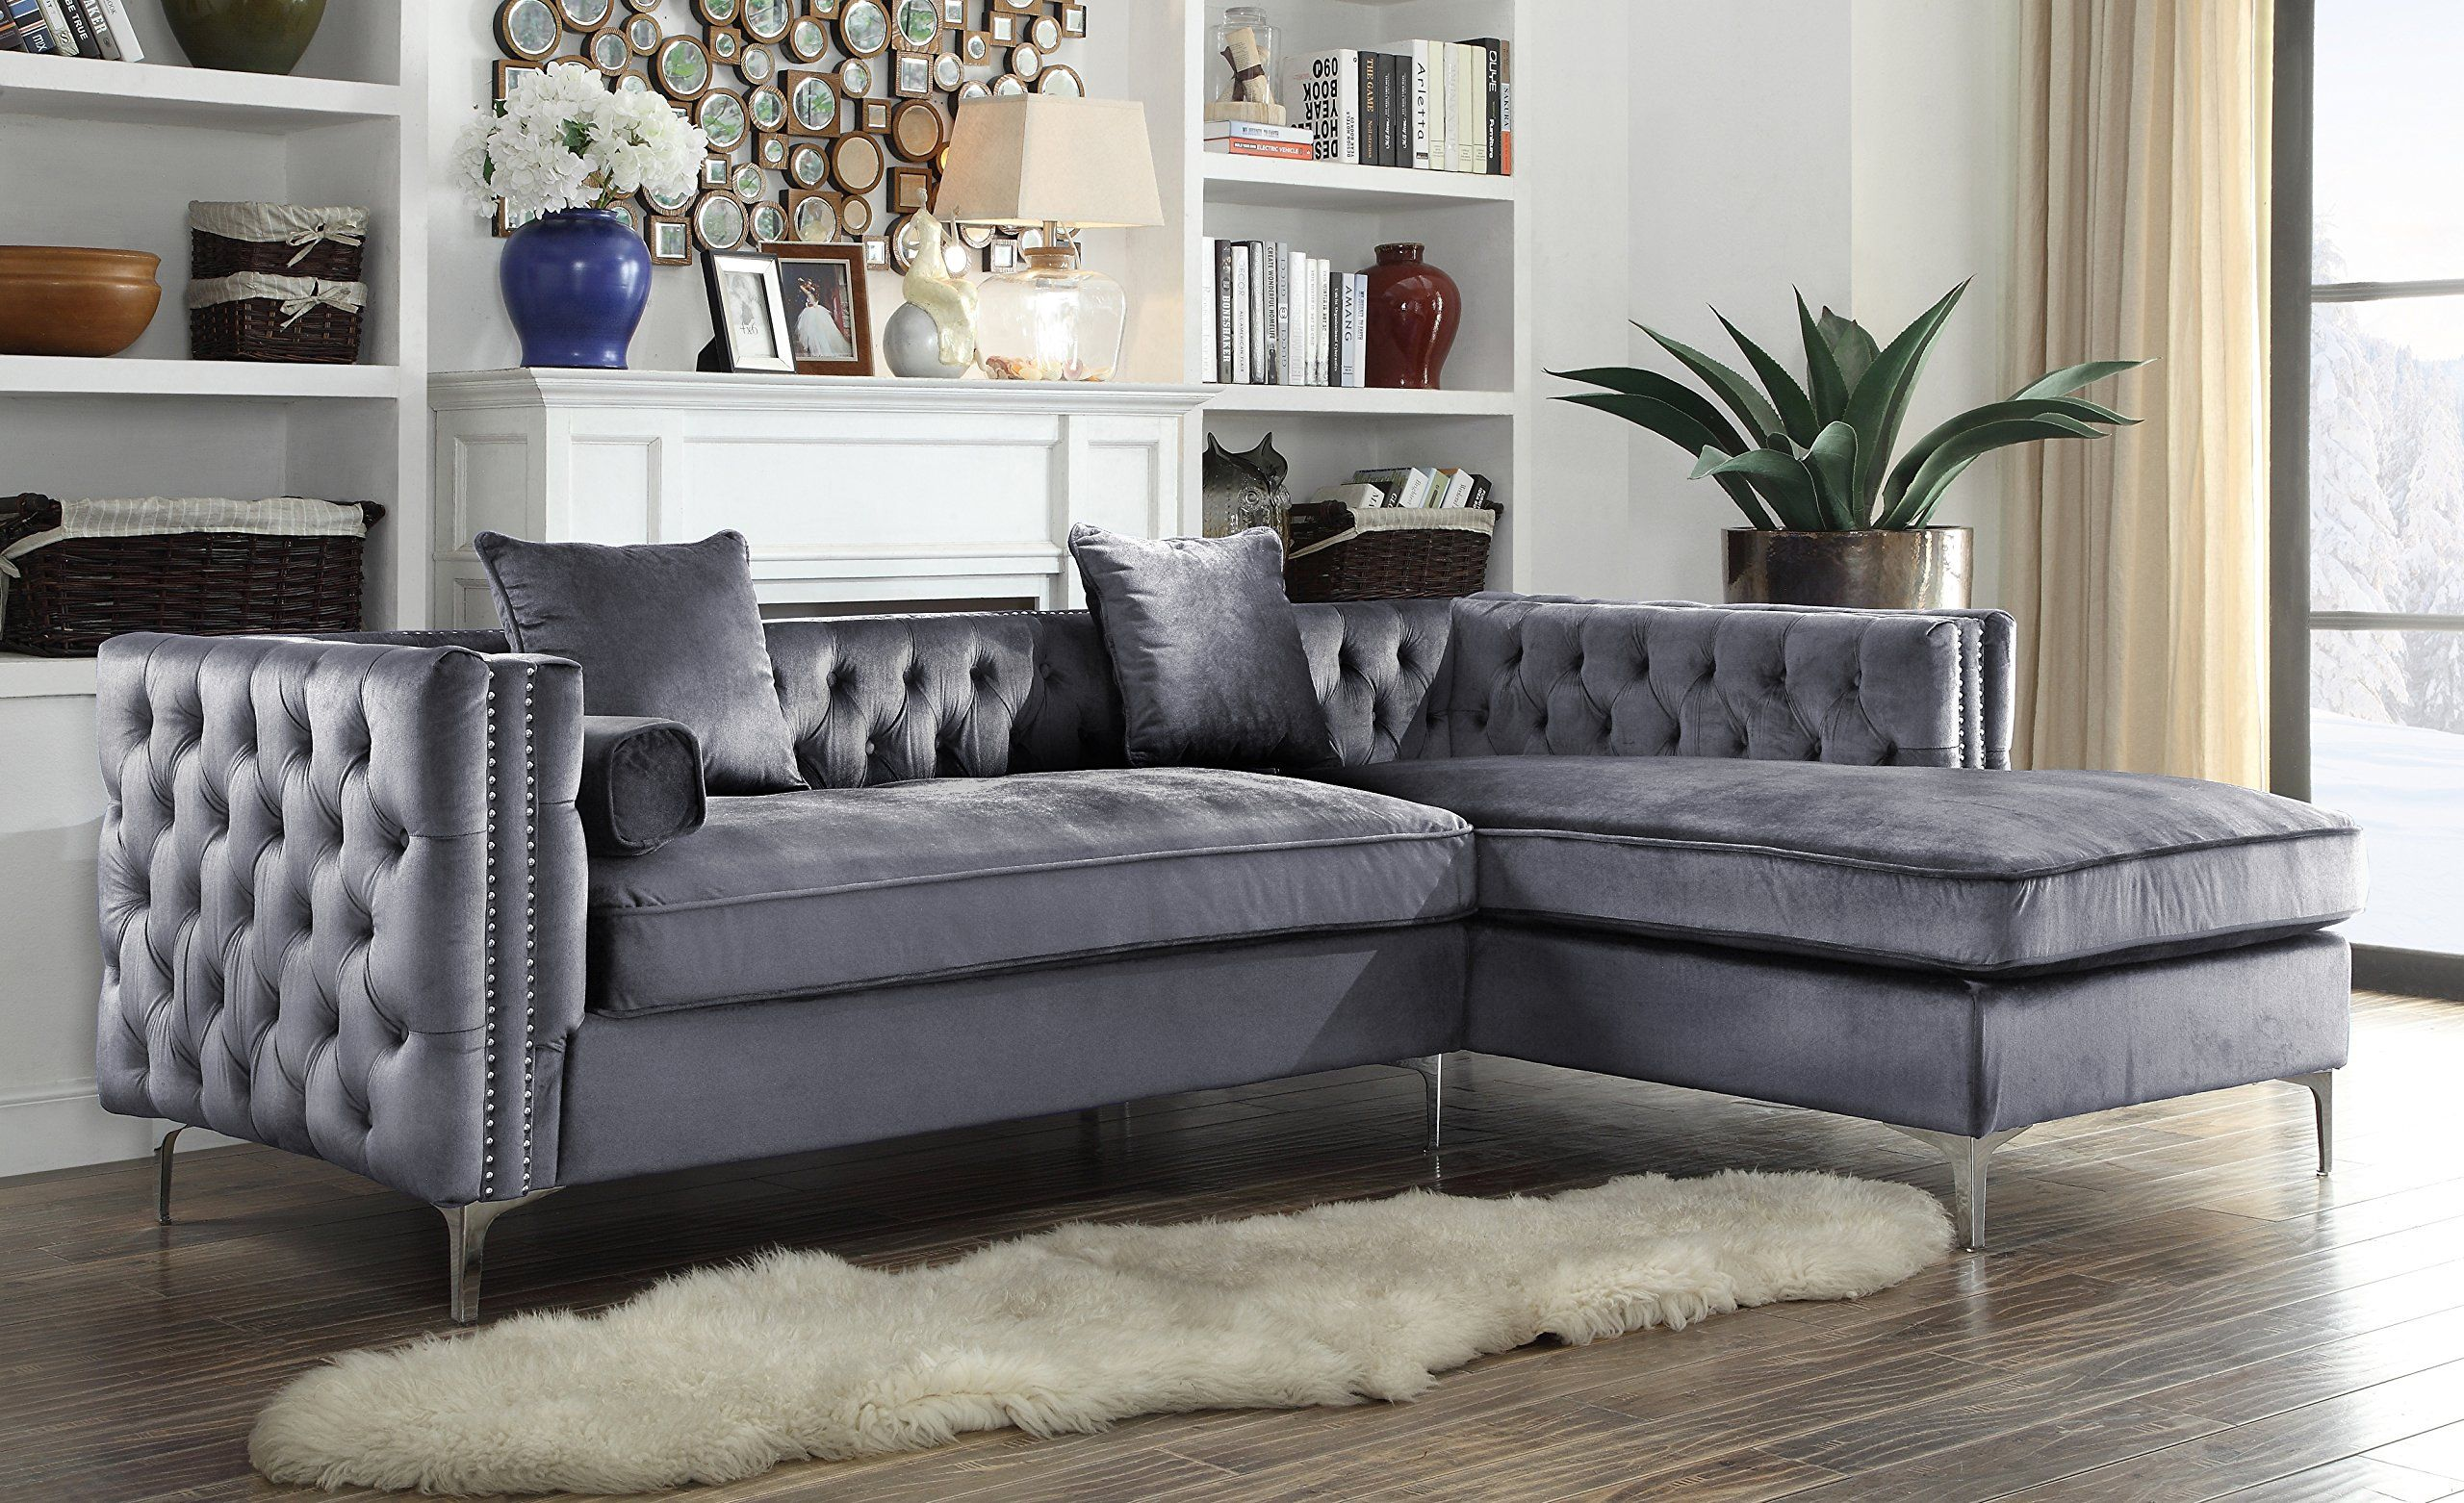 Iconic Home Da Vinci Tufted Silver Trim Grey Velvet Right Facing Sectional Sofa With Silver Tone Metal Y Le Sectional Sofa Grey Sectional Sofa Velvet Sectional